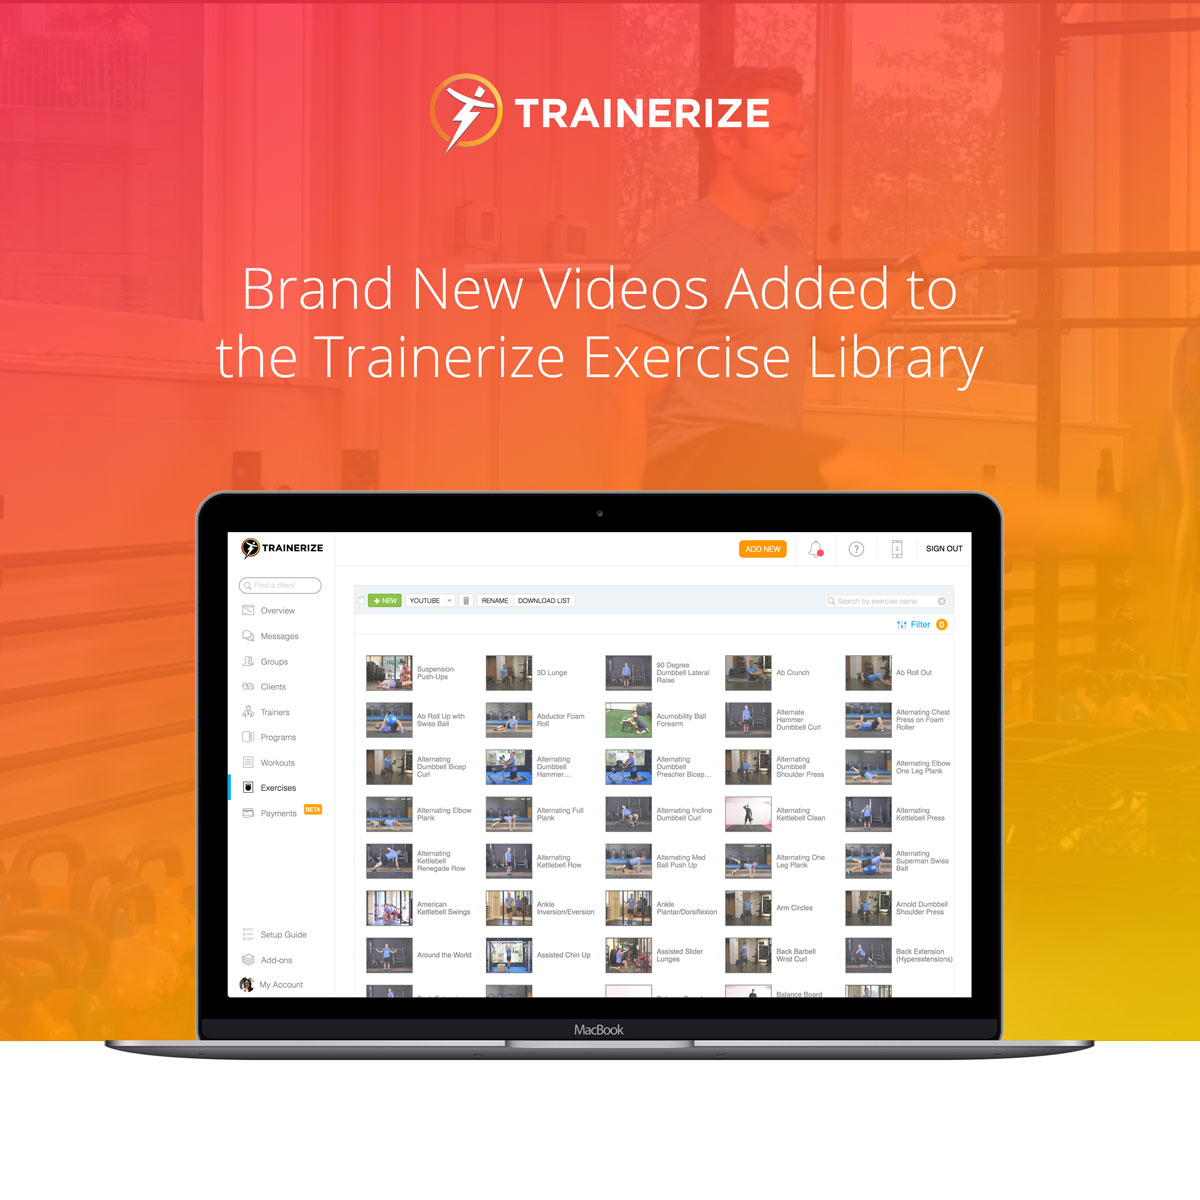 New Exercise Videos Added to the Trainerize Exercise Library